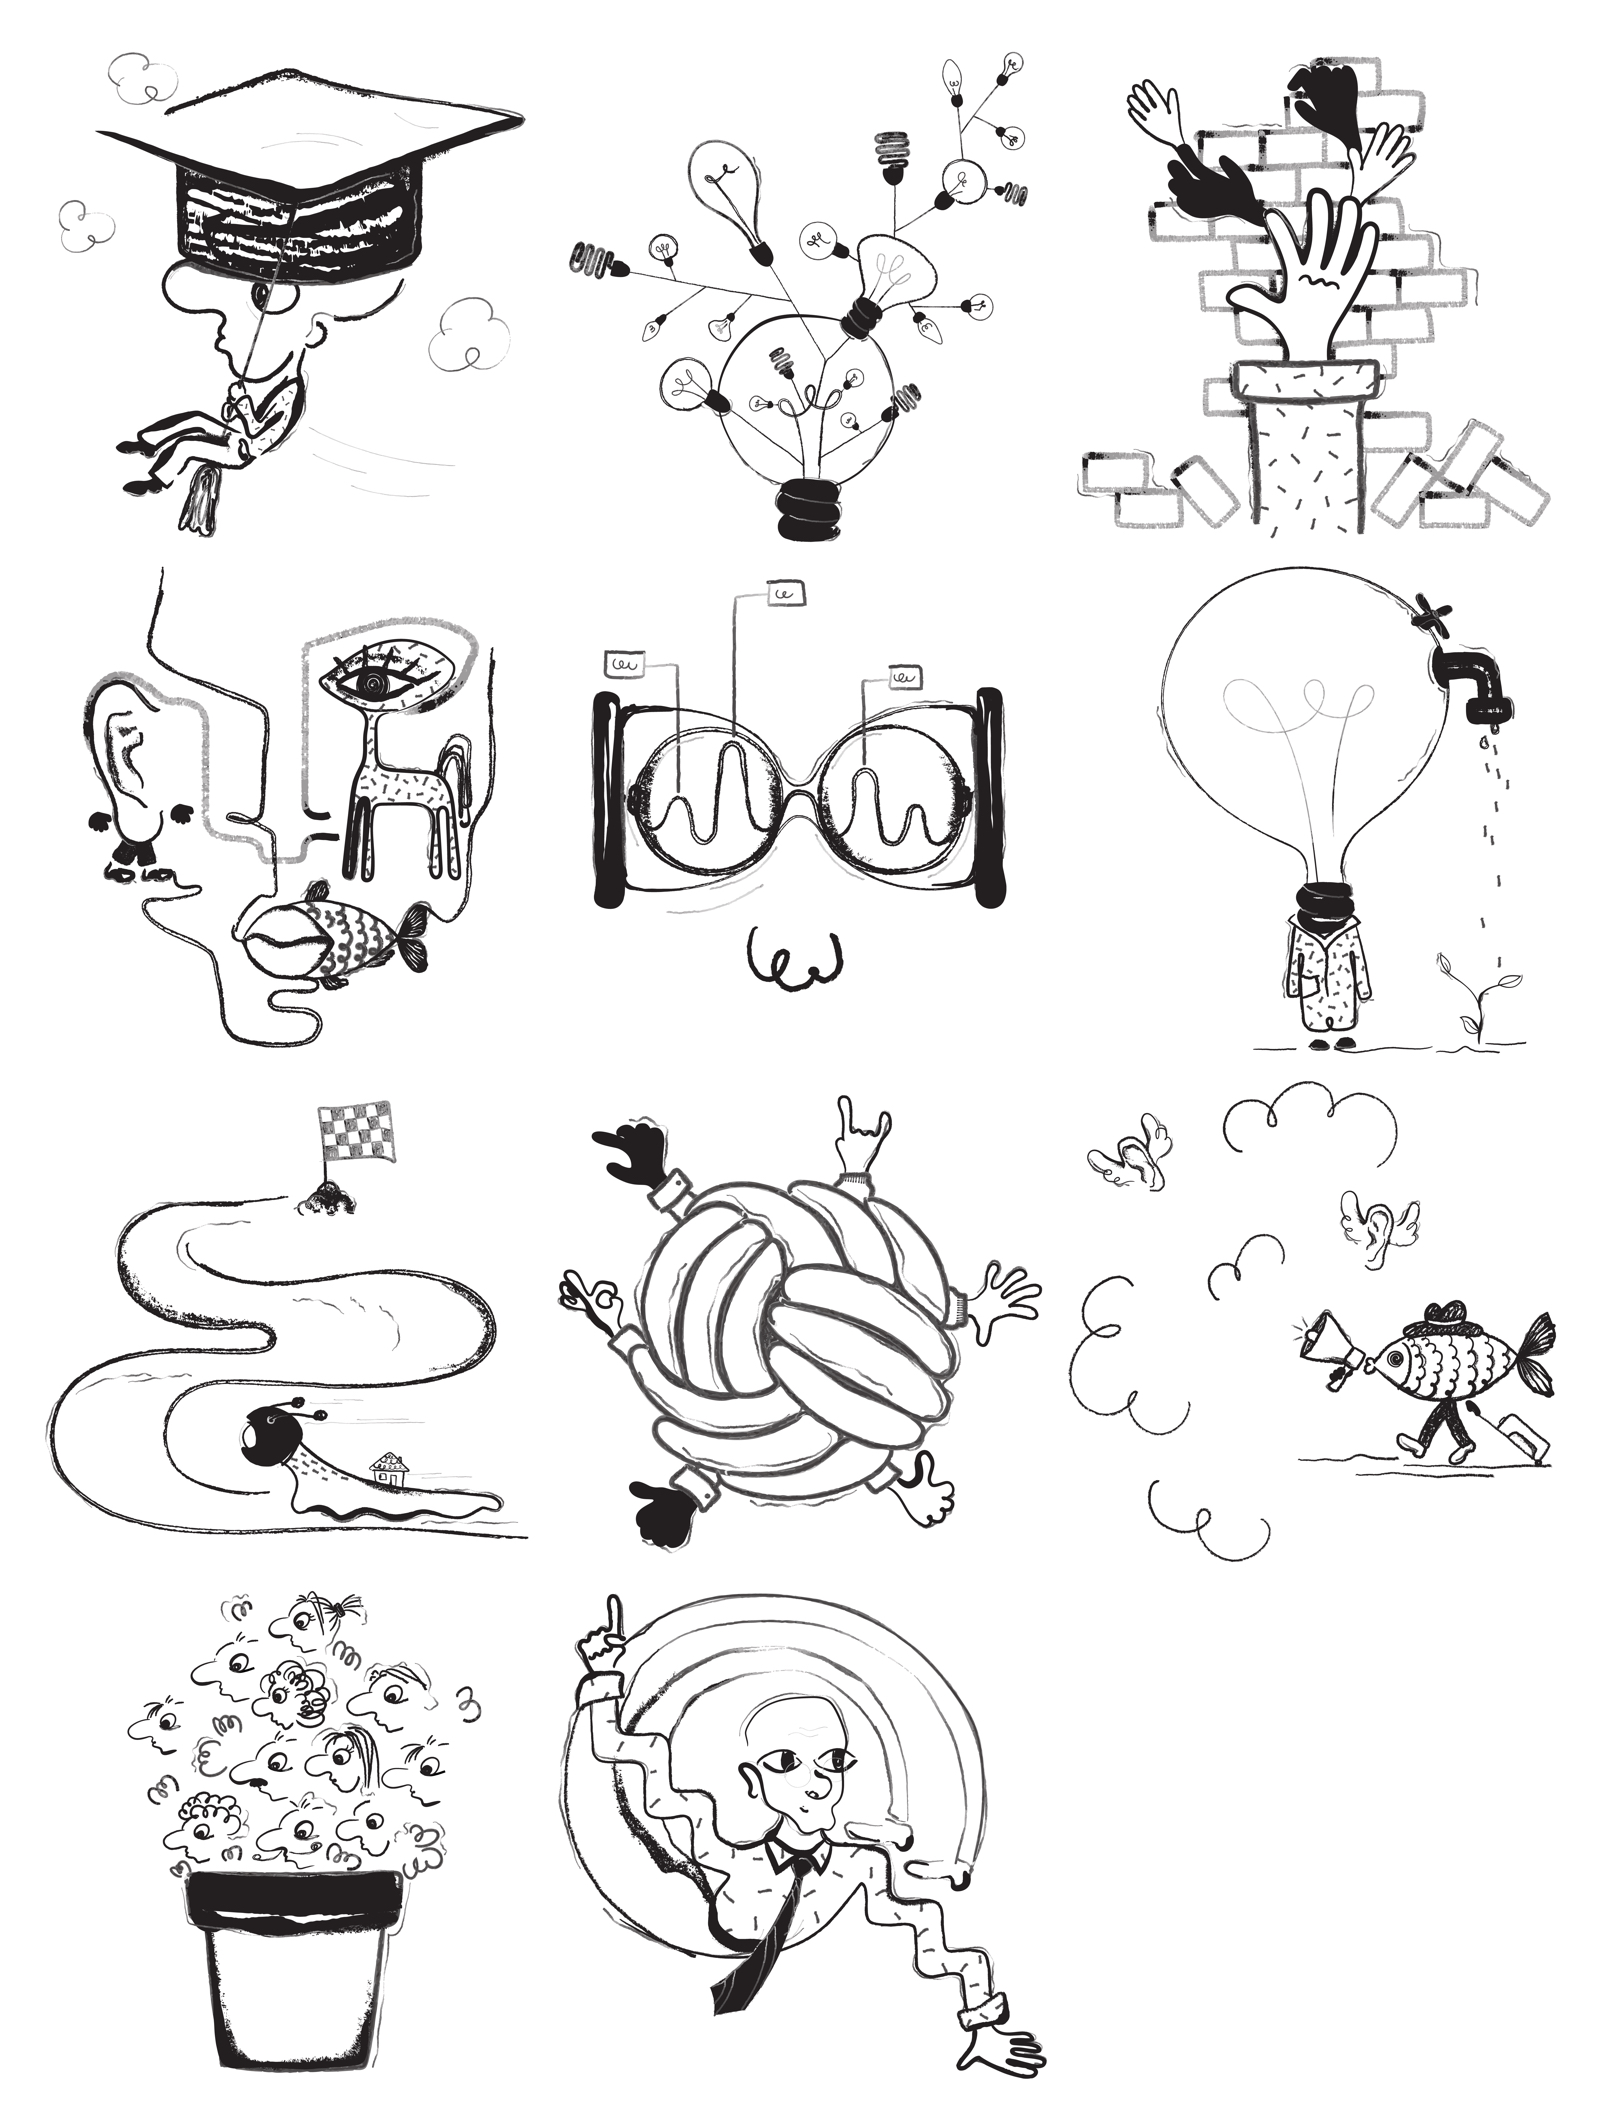 Absurd - Free Surrealist Illustrations - Download surrealist illustrations. Use free vector art for your landing pages, presentations and apps. These artworks combine the absurdity and childishness.